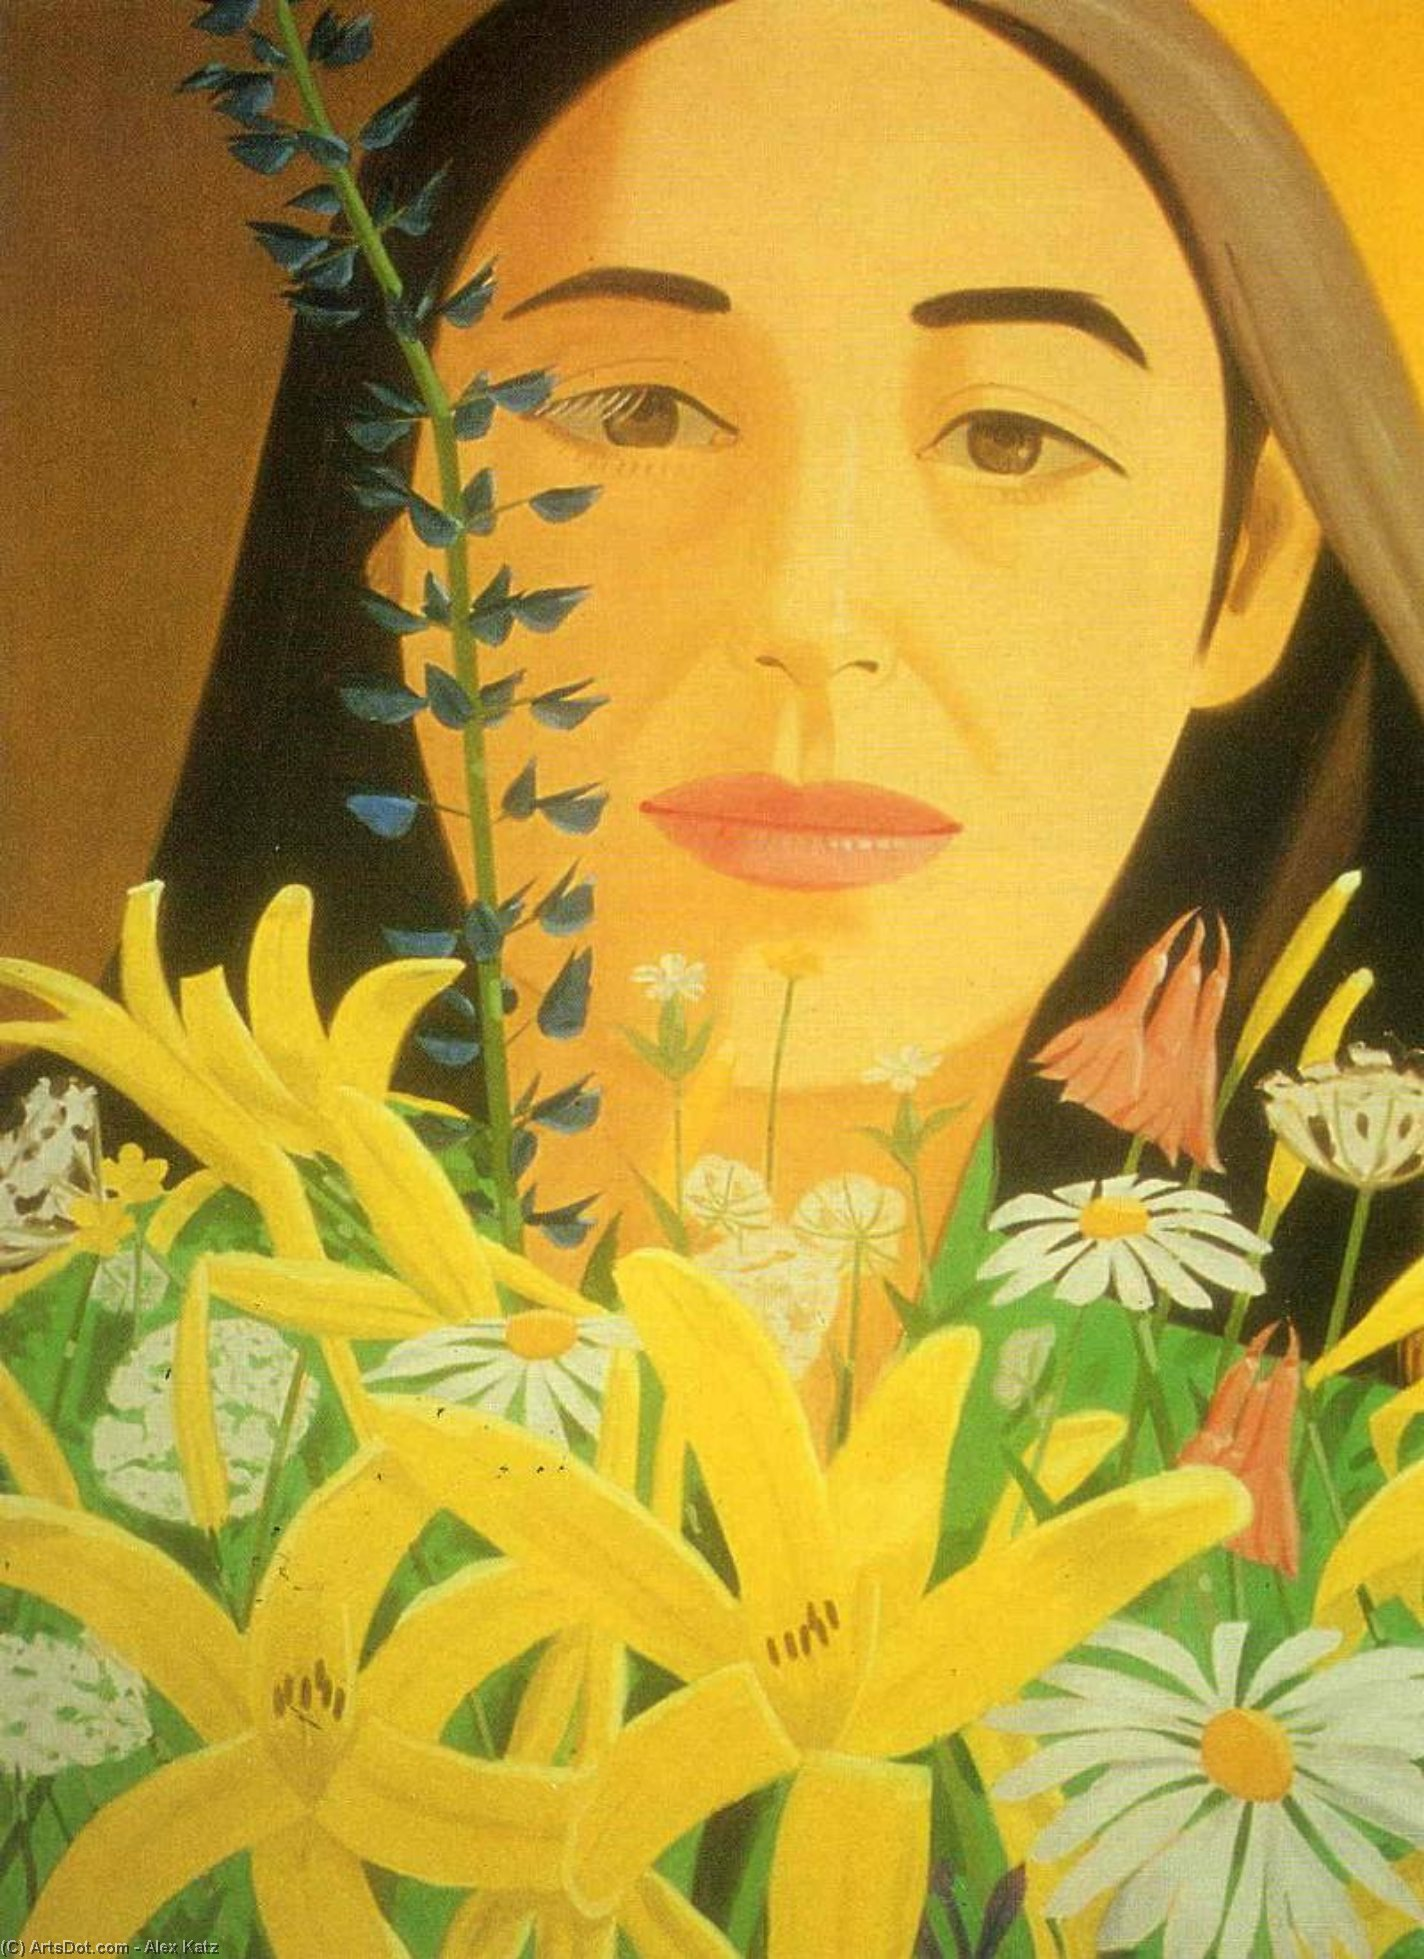 Wikioo.org - The Encyclopedia of Fine Arts - Painting, Artwork by Alex Katz - Ada with Flowers